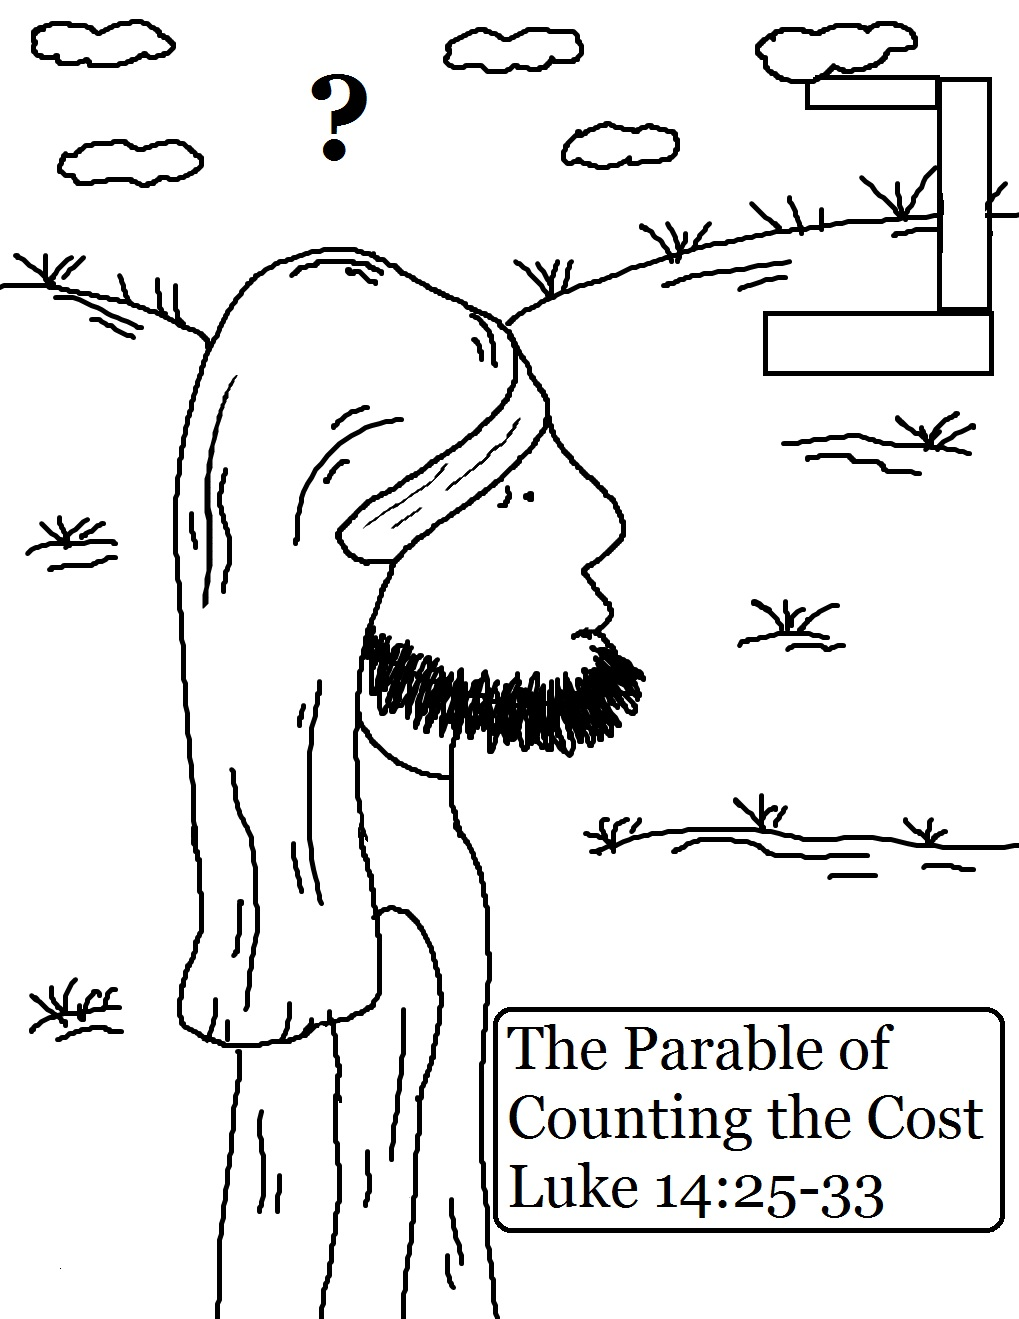 Church House Collection Blog: The Parable of Counting the